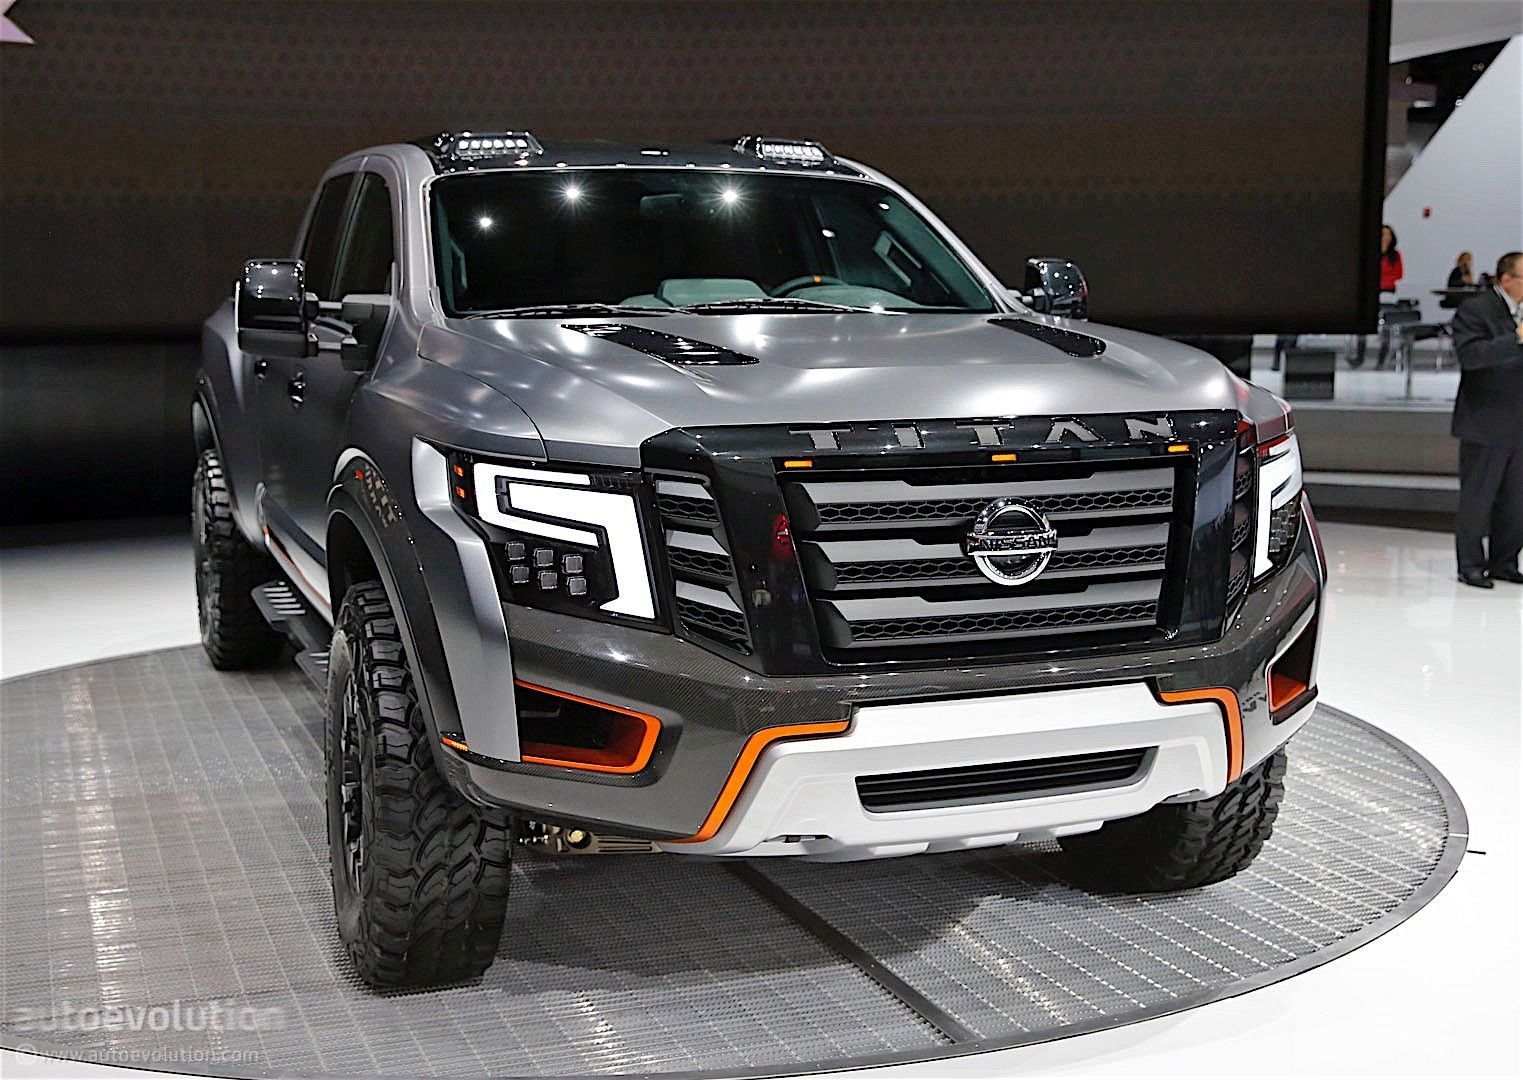 2017 nissan titan new light duty looks more manly and more stable a lot of information circulating that nissan titan light dut